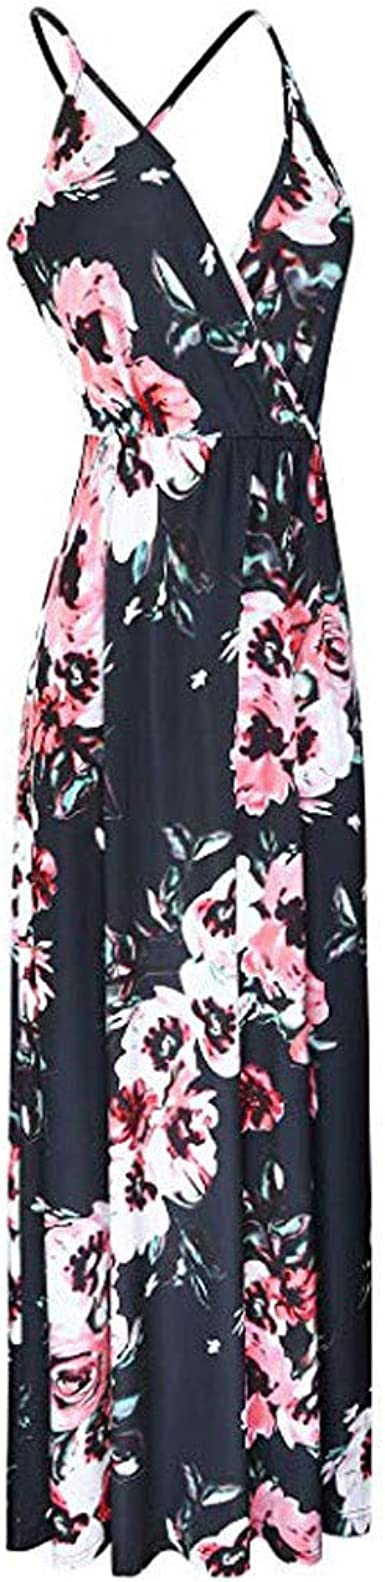 Hessimy Womens Summer Sleeveless Loose Plain Maxi Dress Floral Print Casual Long Dresses